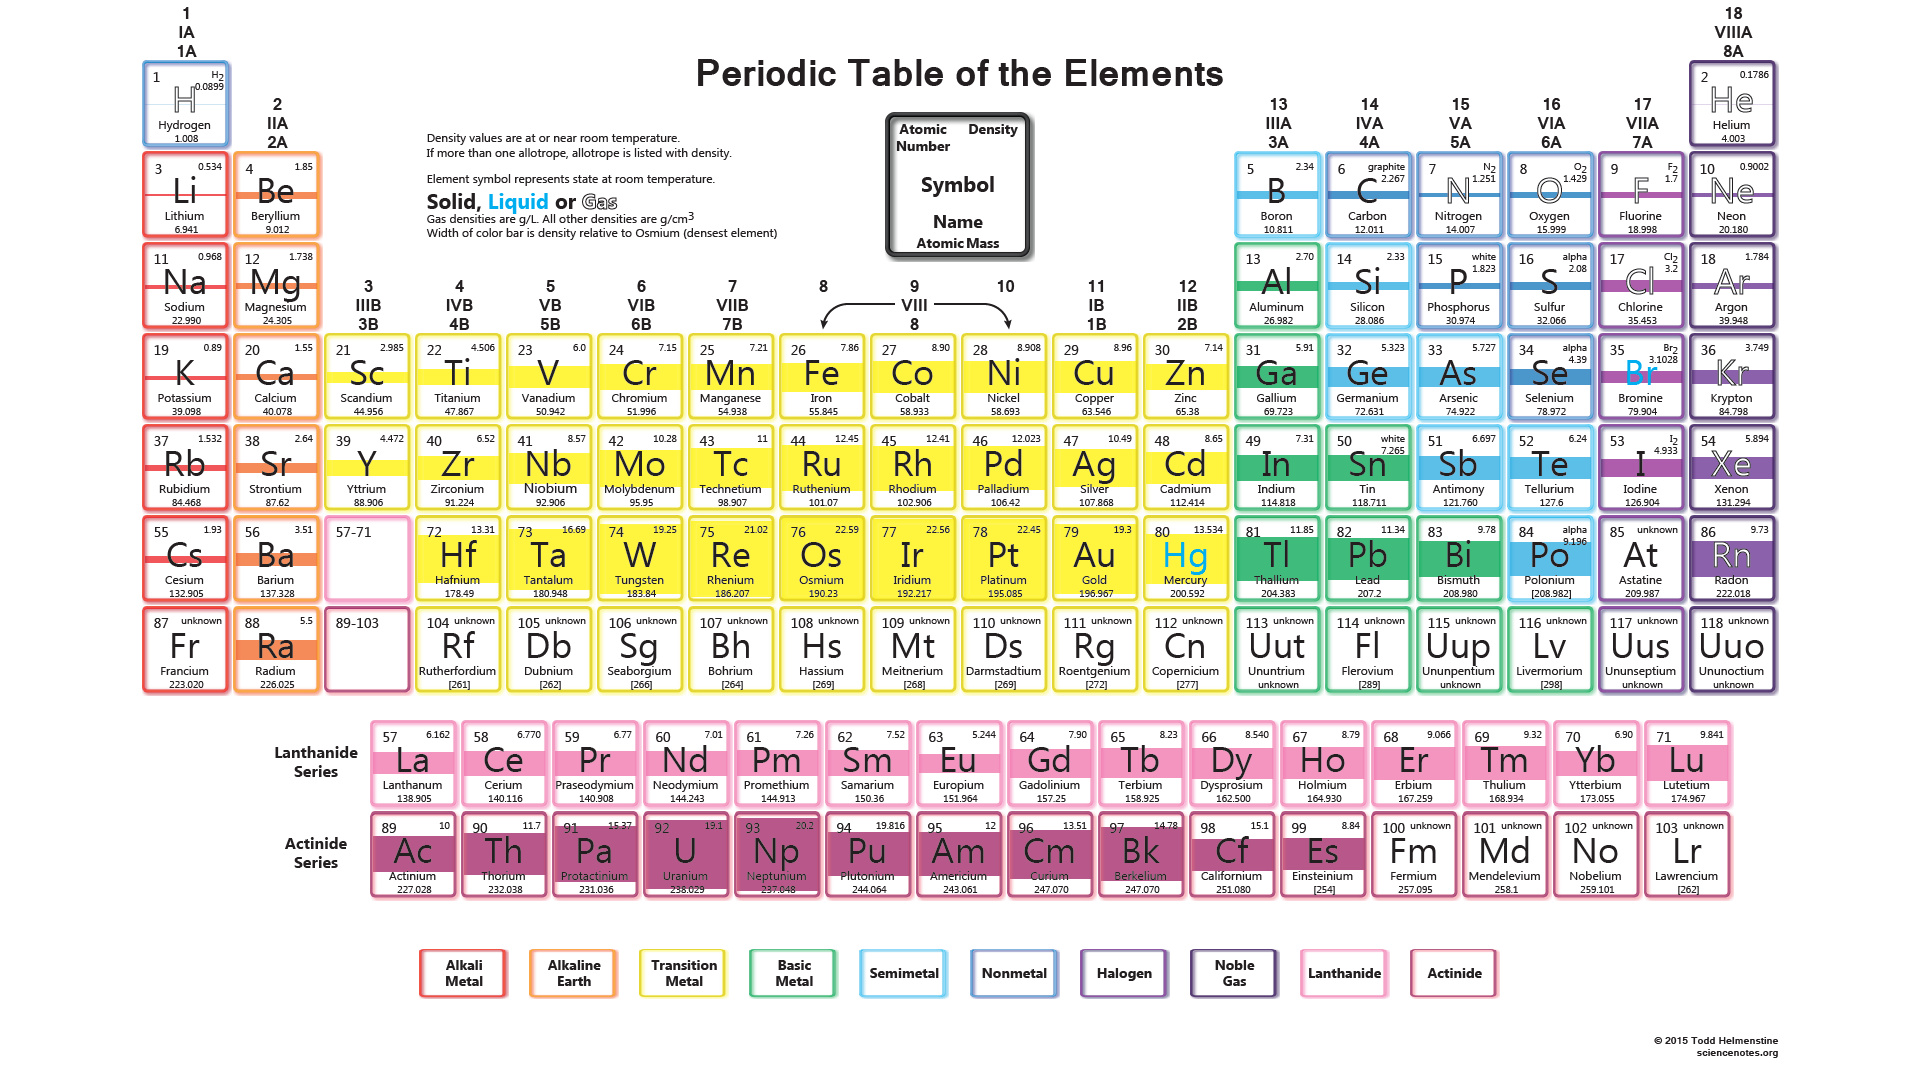 density periodic table - 8 5 X 11 Periodic Table Of Elements